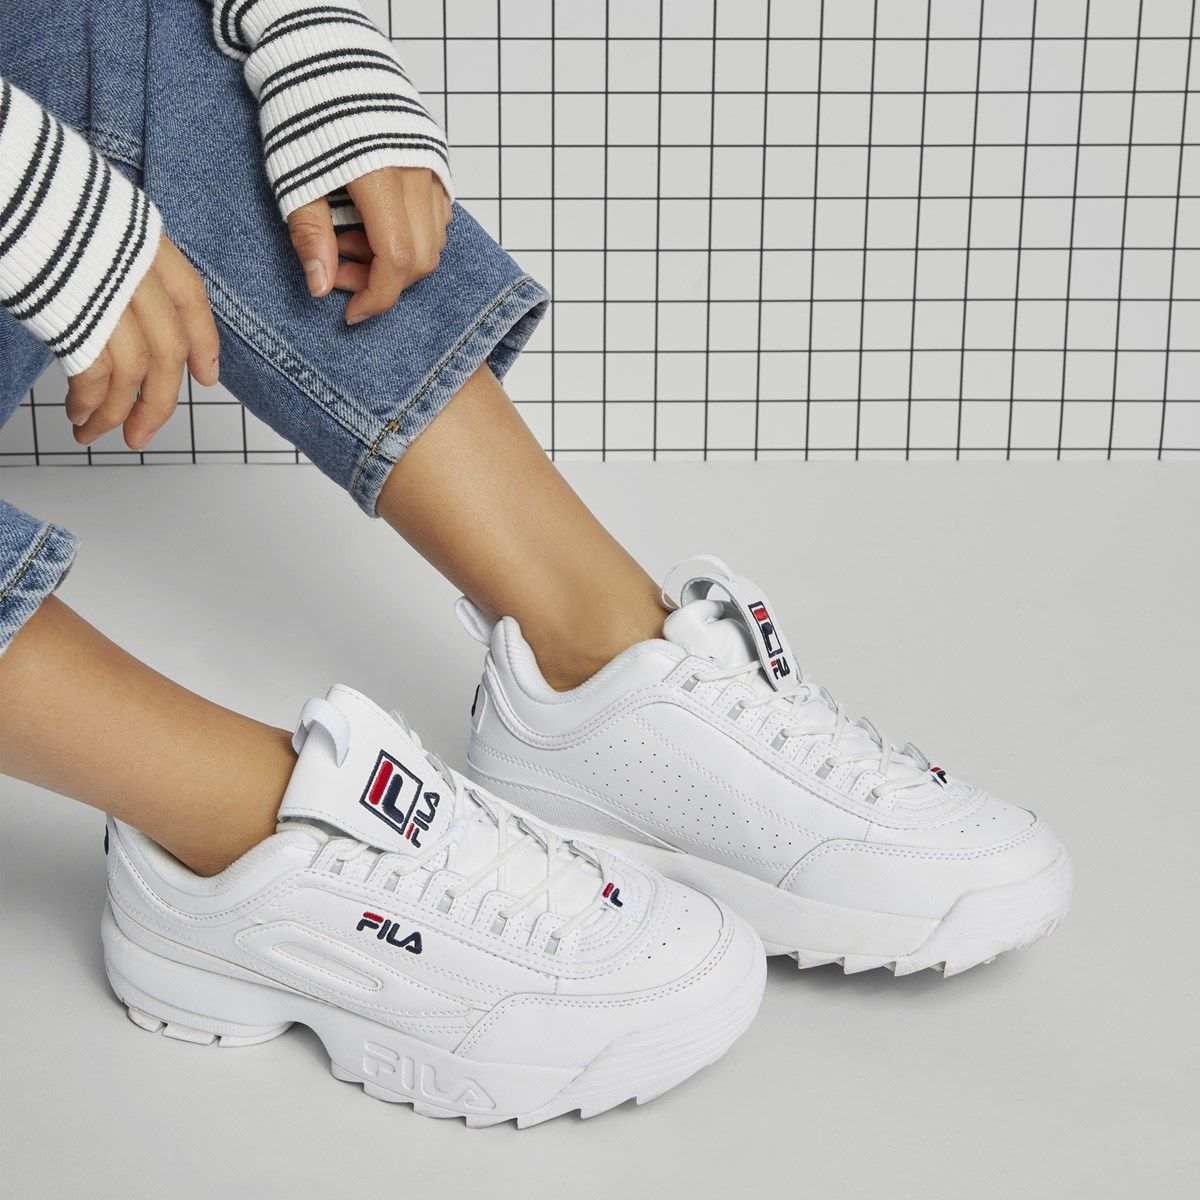 Women's Disruptor II Premium Sneakers in White Fila hvit  Fila white